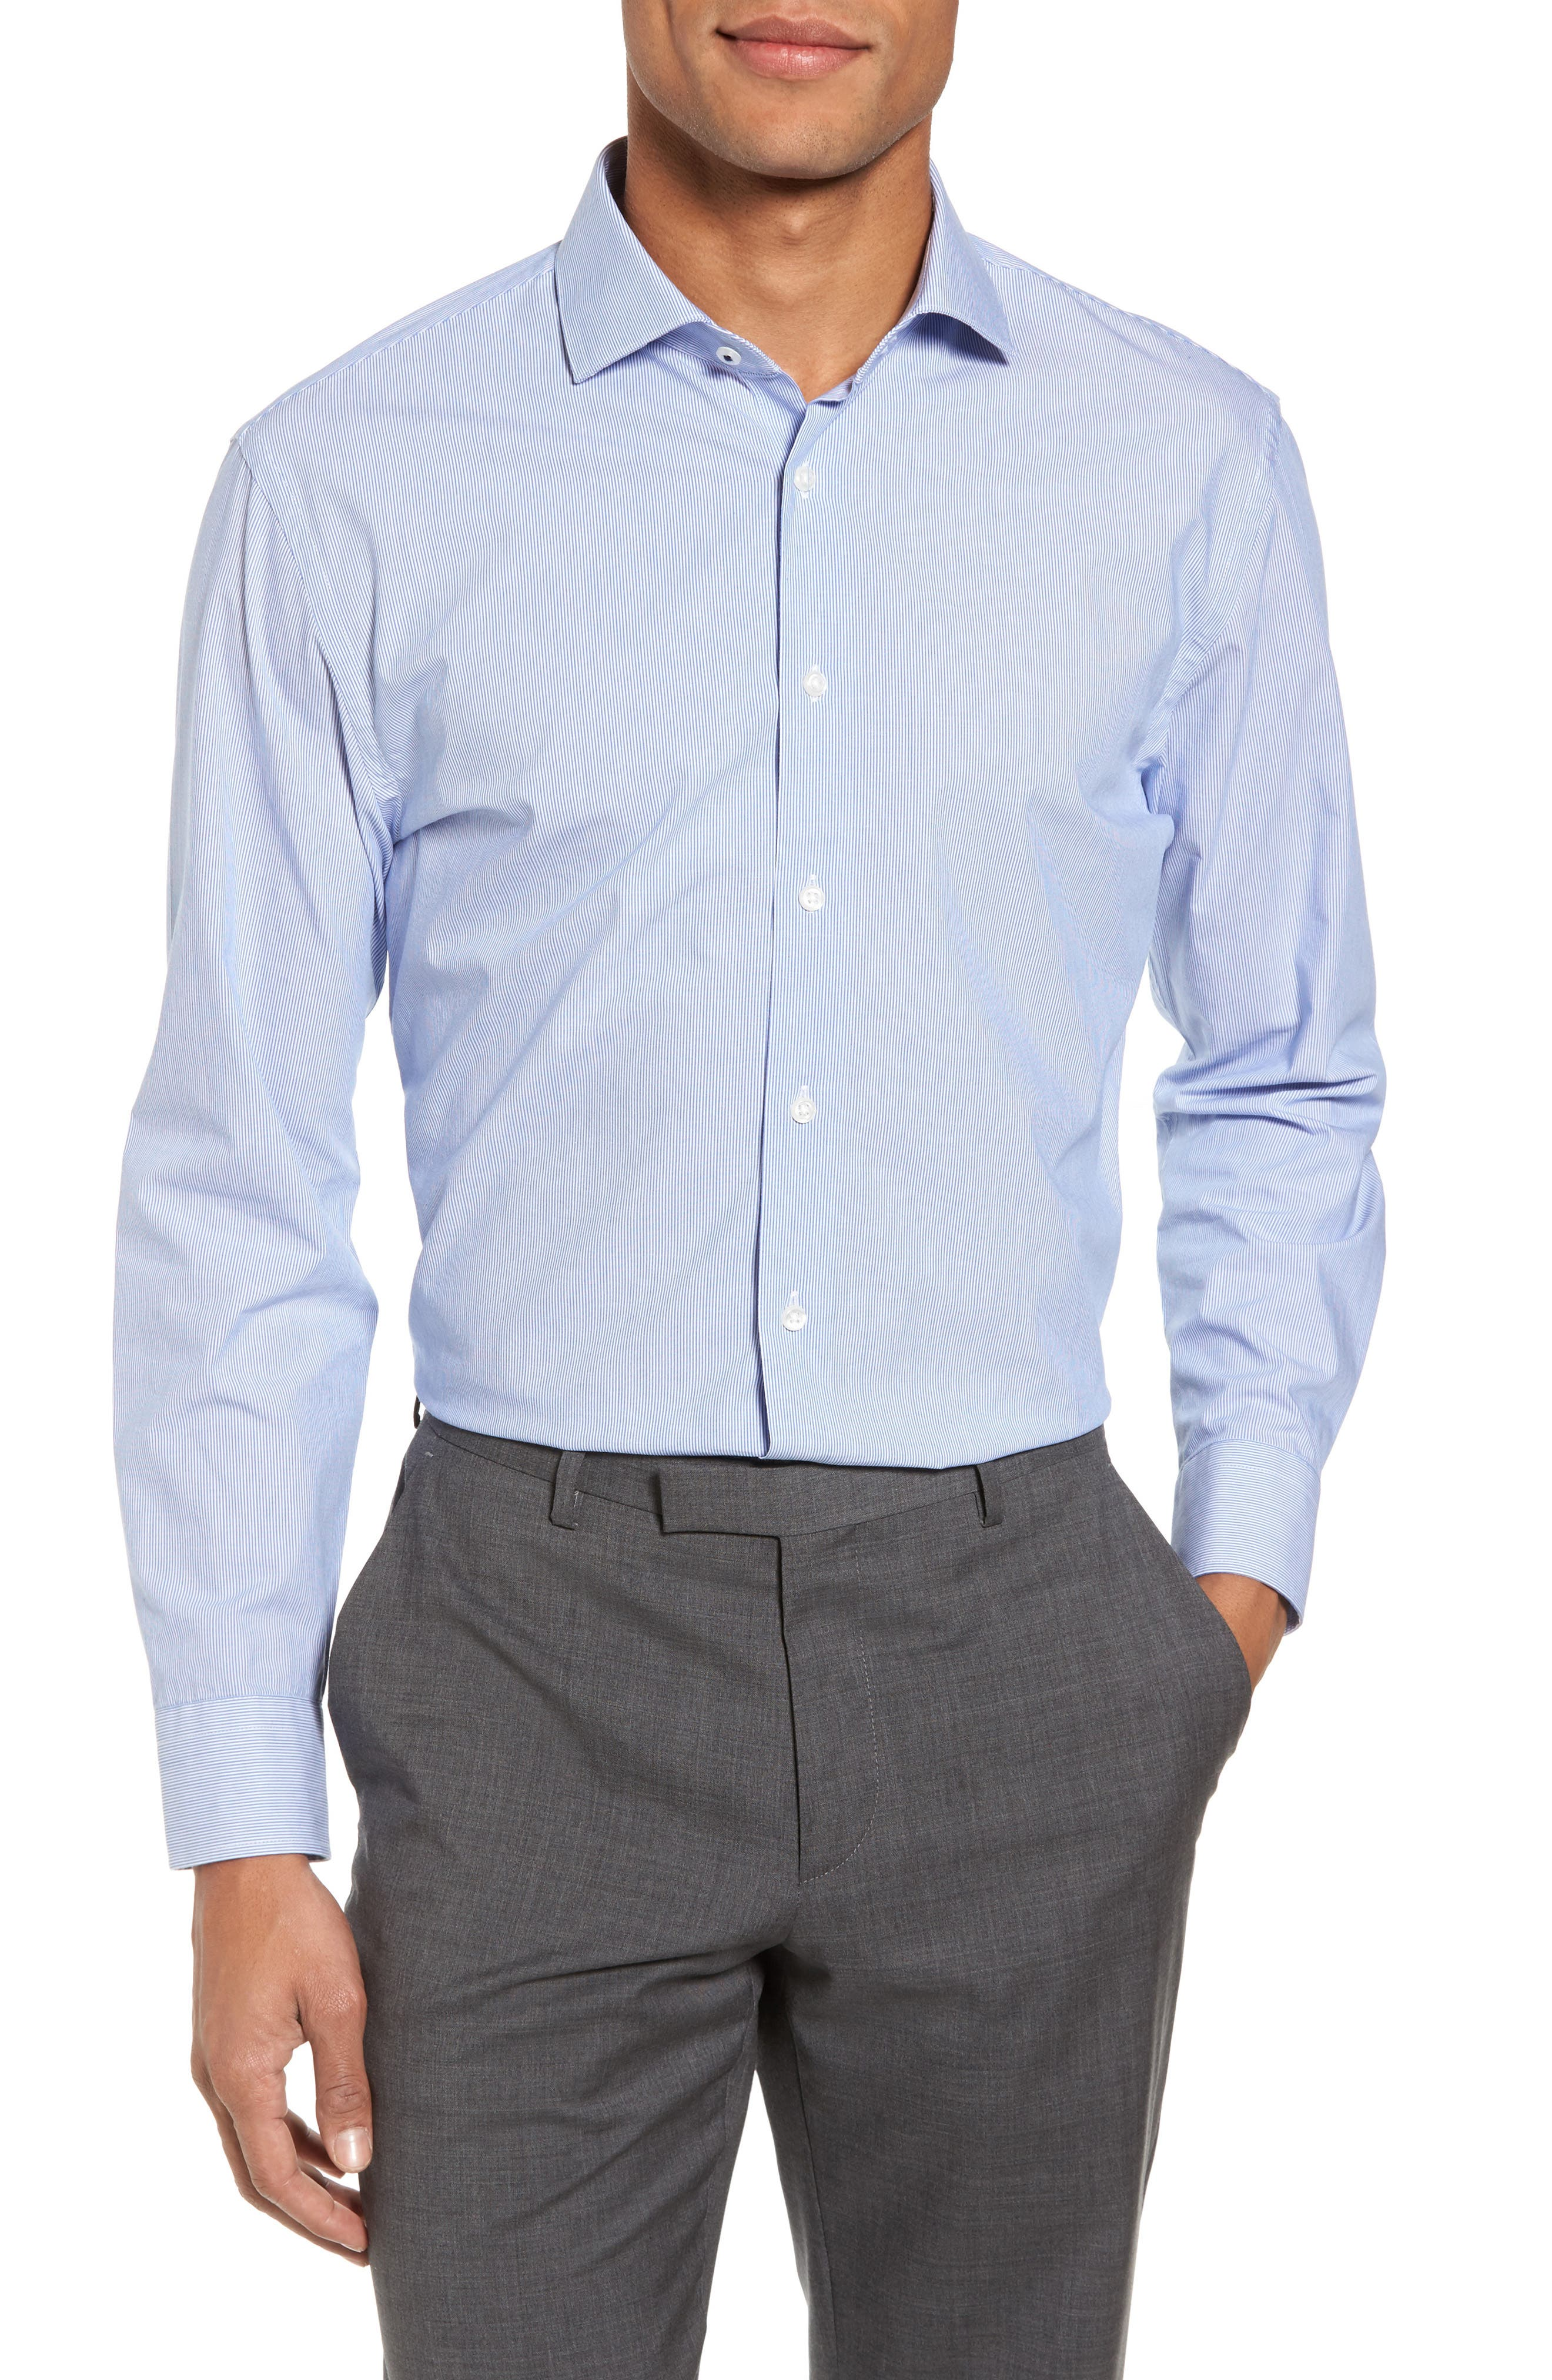 Tech-Smart Trim Fit Stretch Stripe Dress Shirt,                         Main,                         color, Blue Yonder